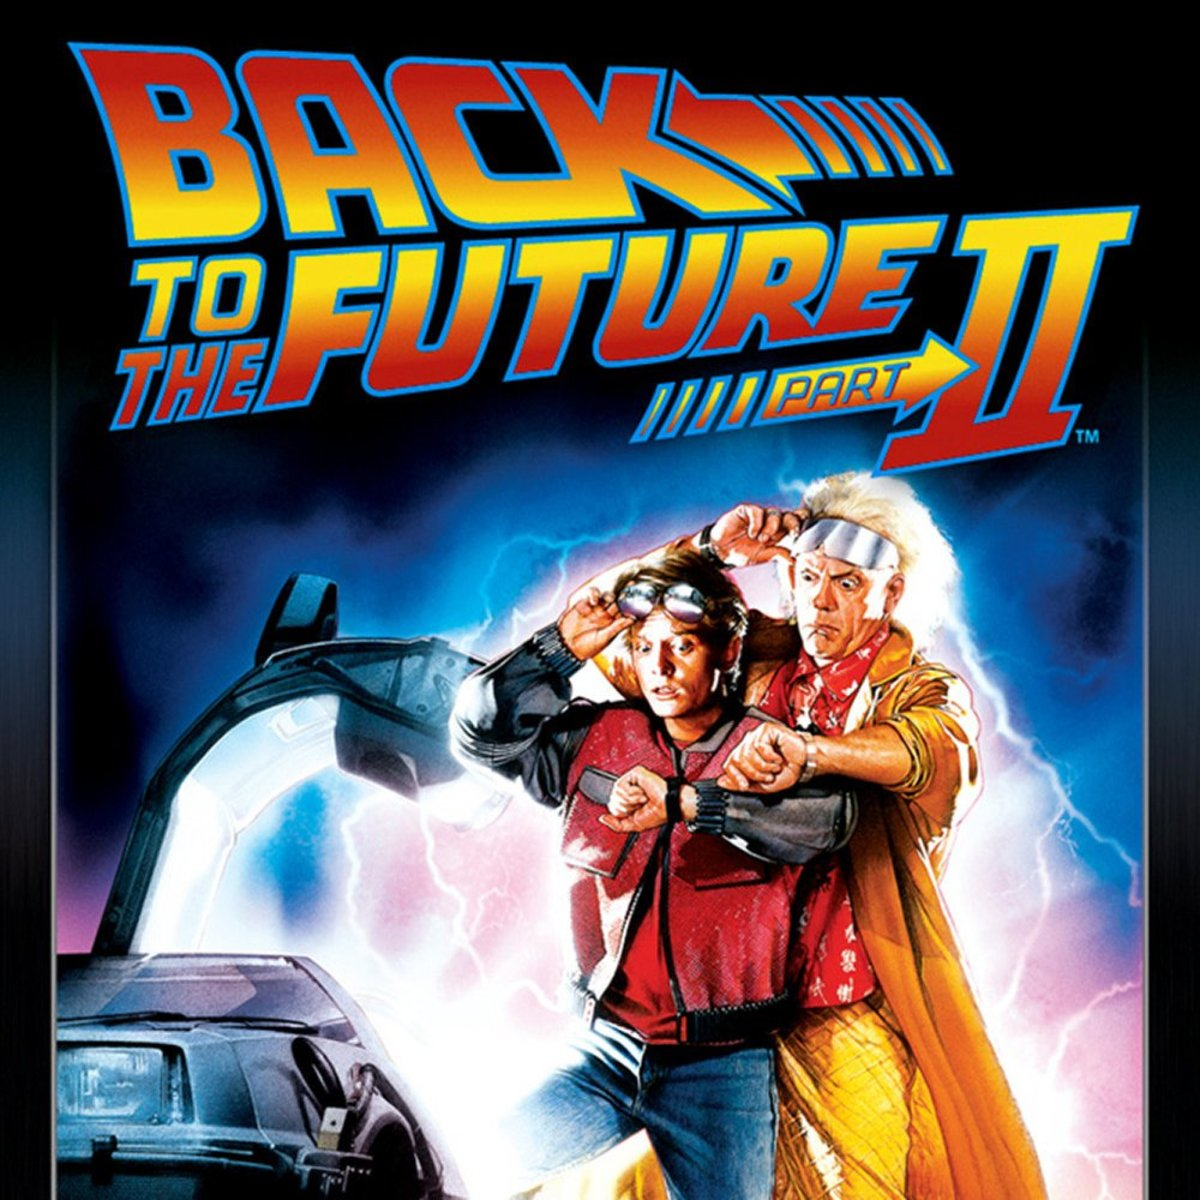 Back to the Future 2 Makes No Sense